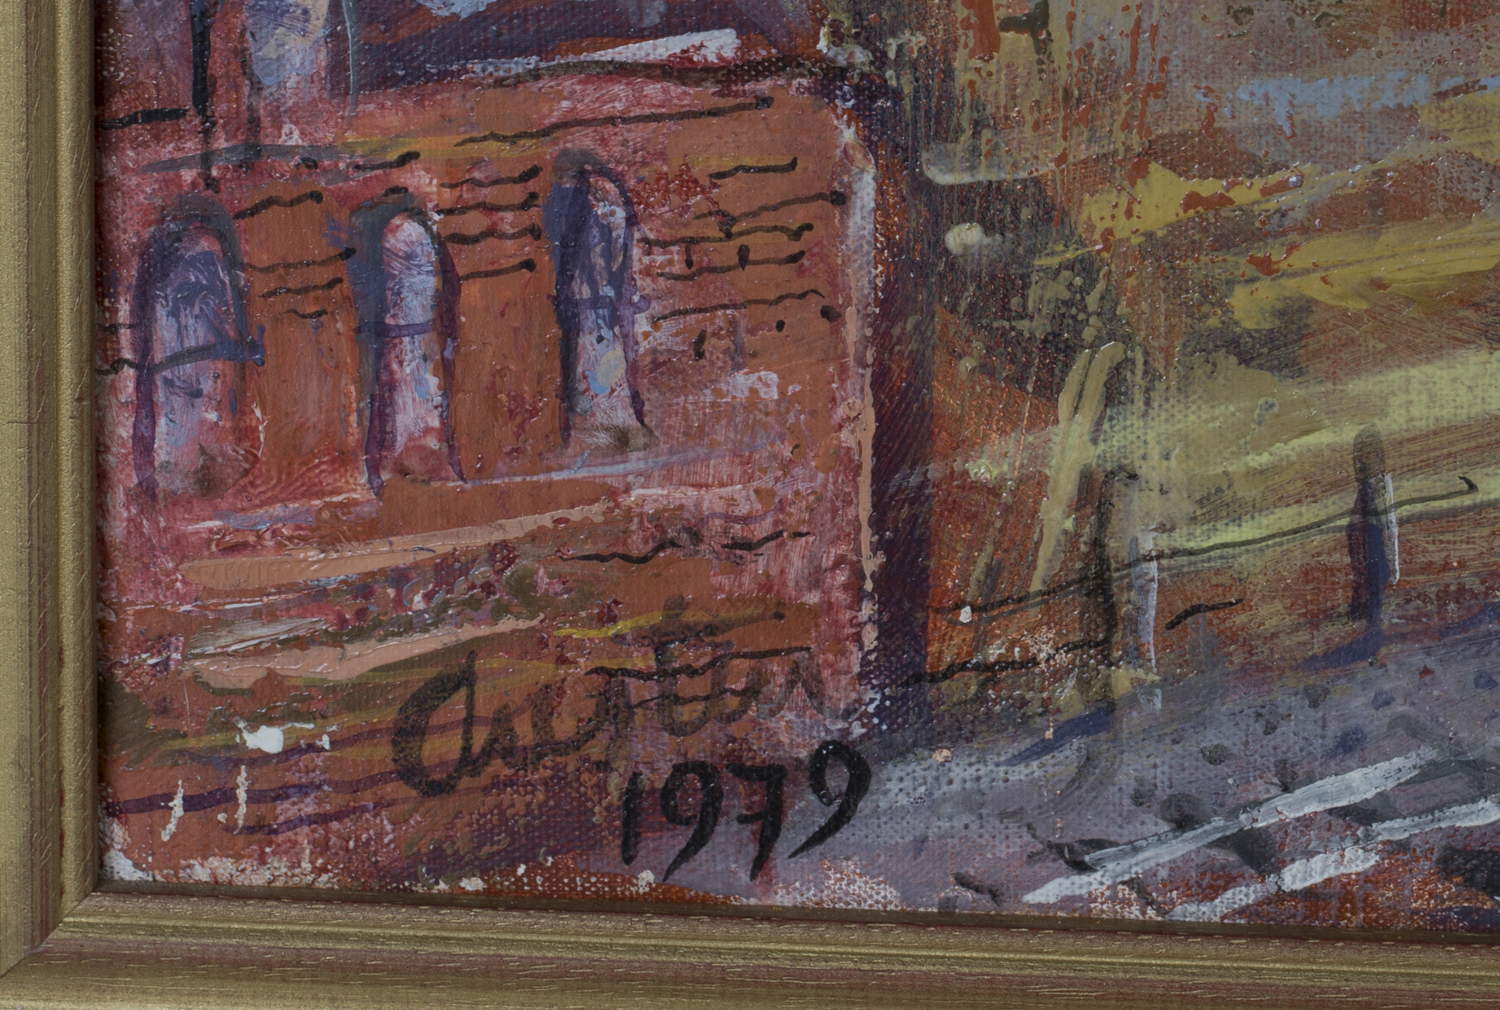 Lot 21 - Austin Taylor - 'Arundel', oil on canvas, signed and dated 1979 recto, titled verso, 90.5cm x 120.